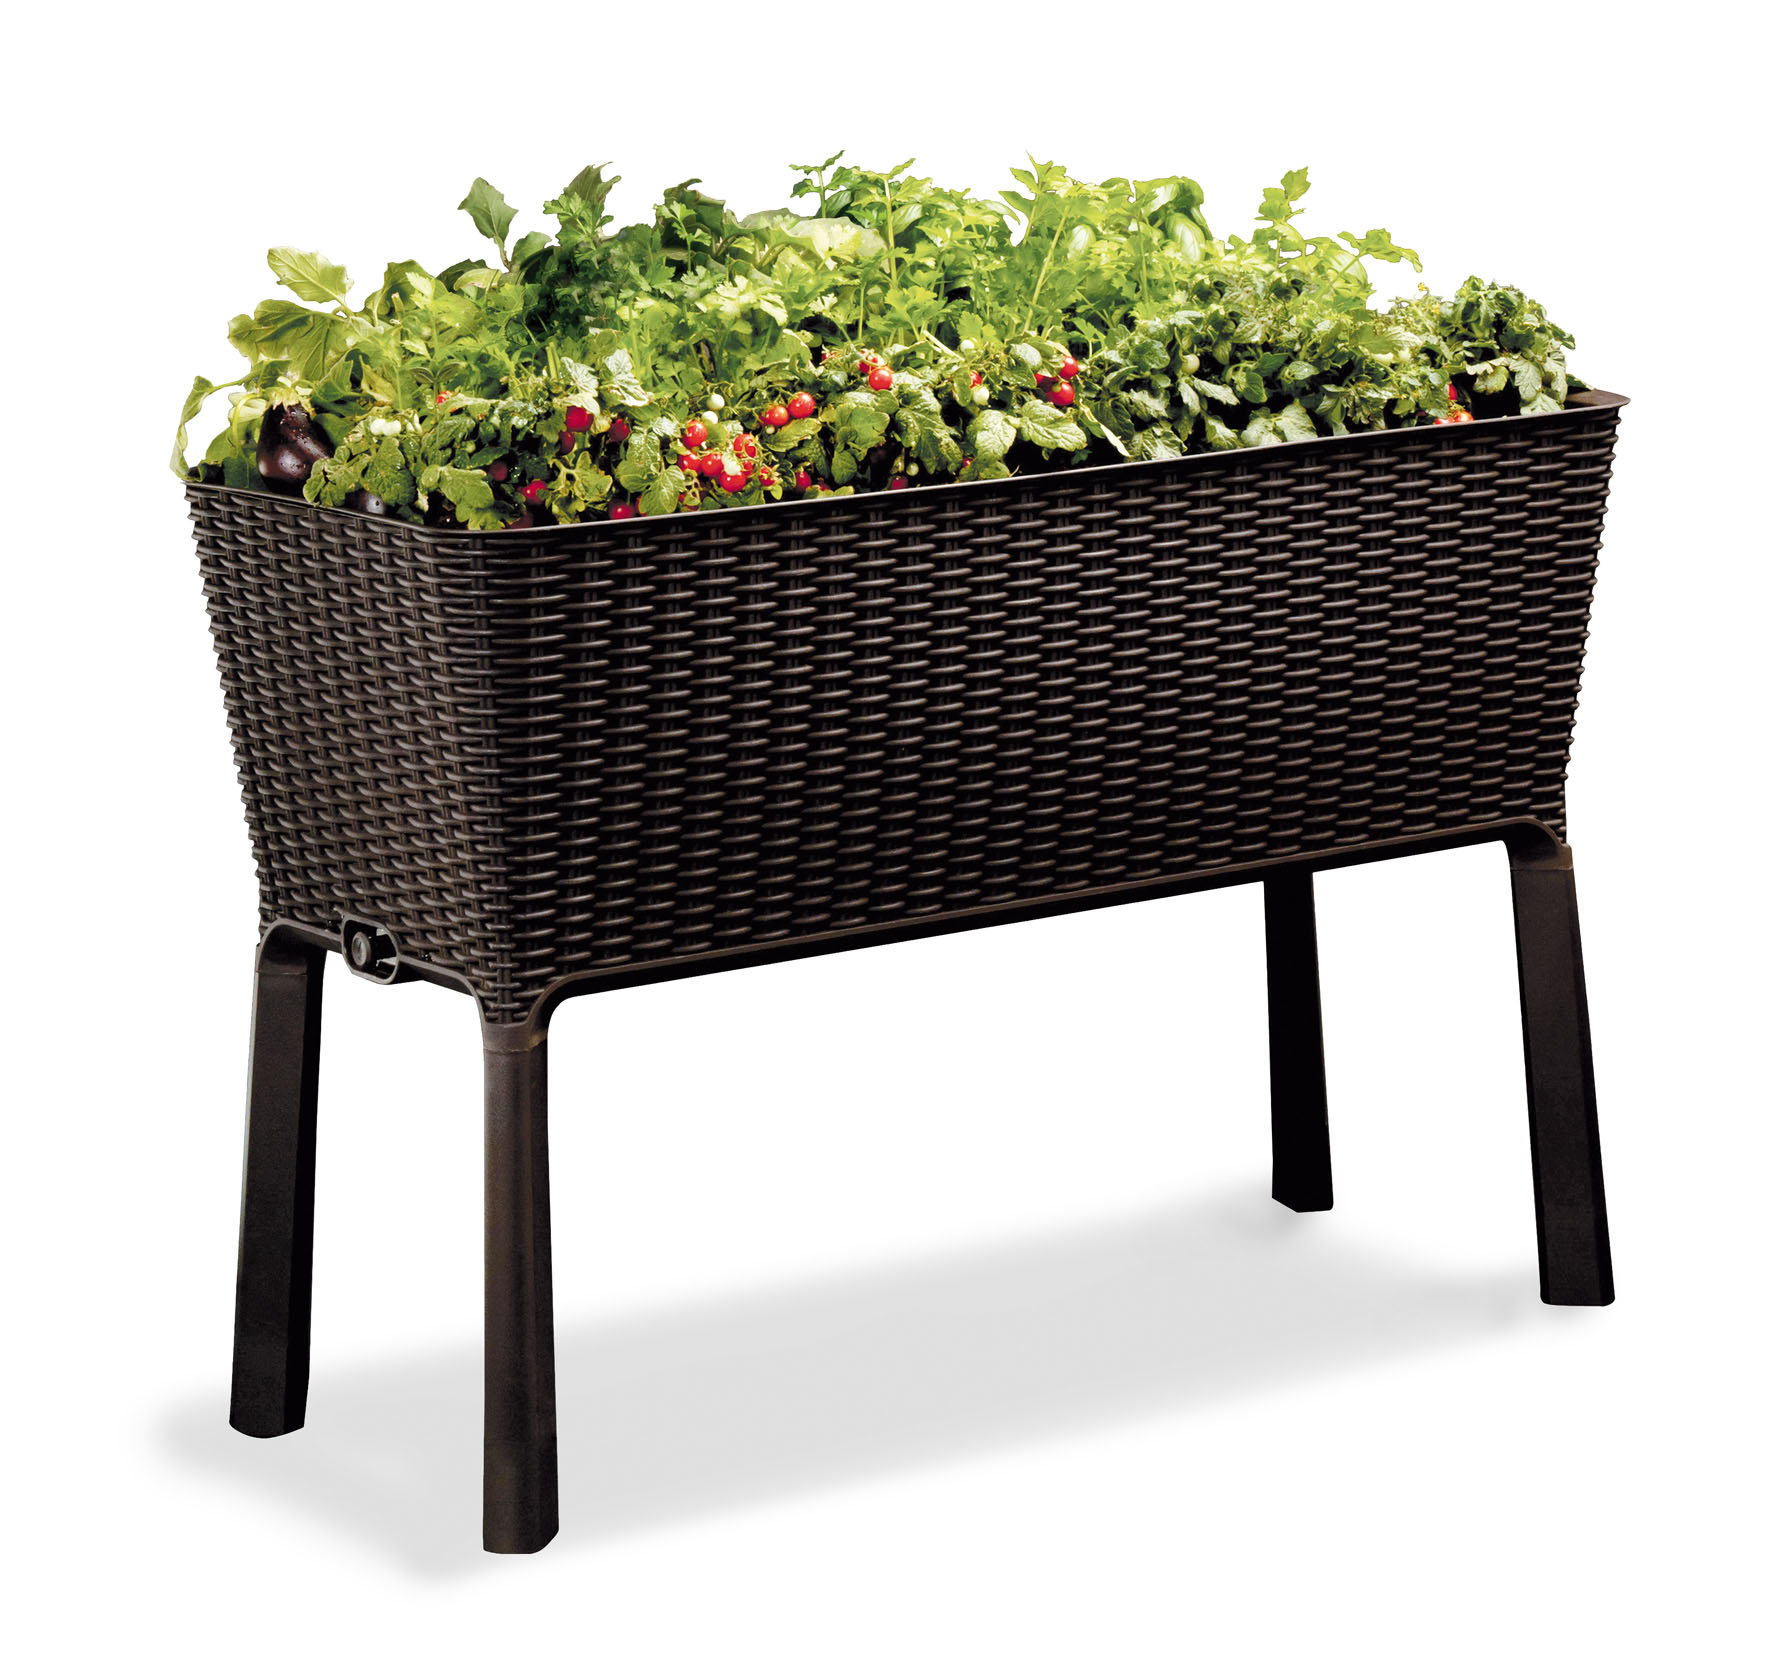 Keter Easy Grow Resin Elevated Garden, All Weather, Self-Watering Plastic Planter, Brown Rattan